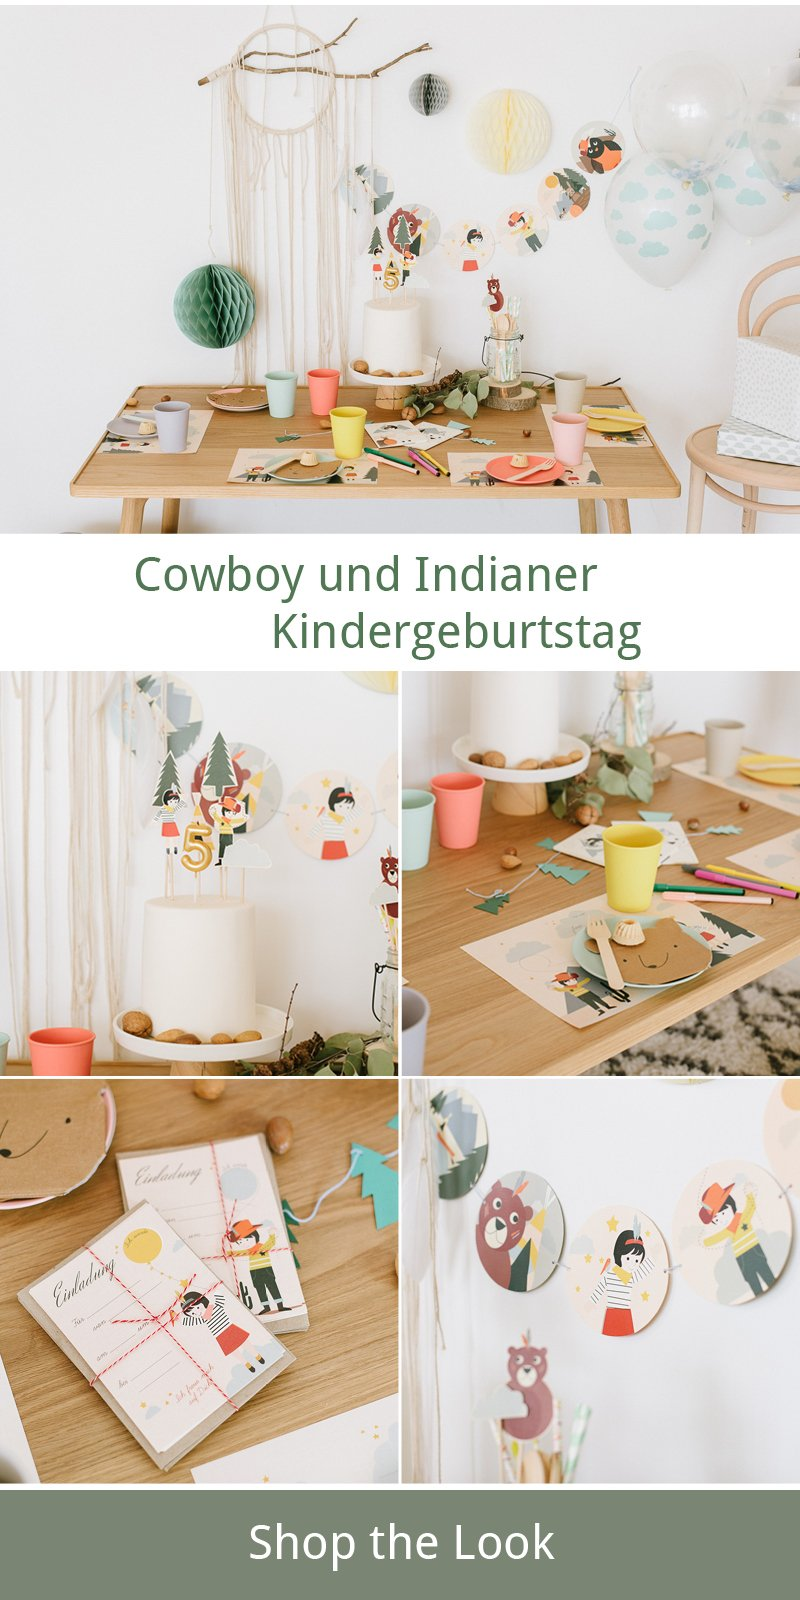 cowboys und indianer s e kindergeburtstagsidee fr ulein k sagt ja hochzeitsblog. Black Bedroom Furniture Sets. Home Design Ideas